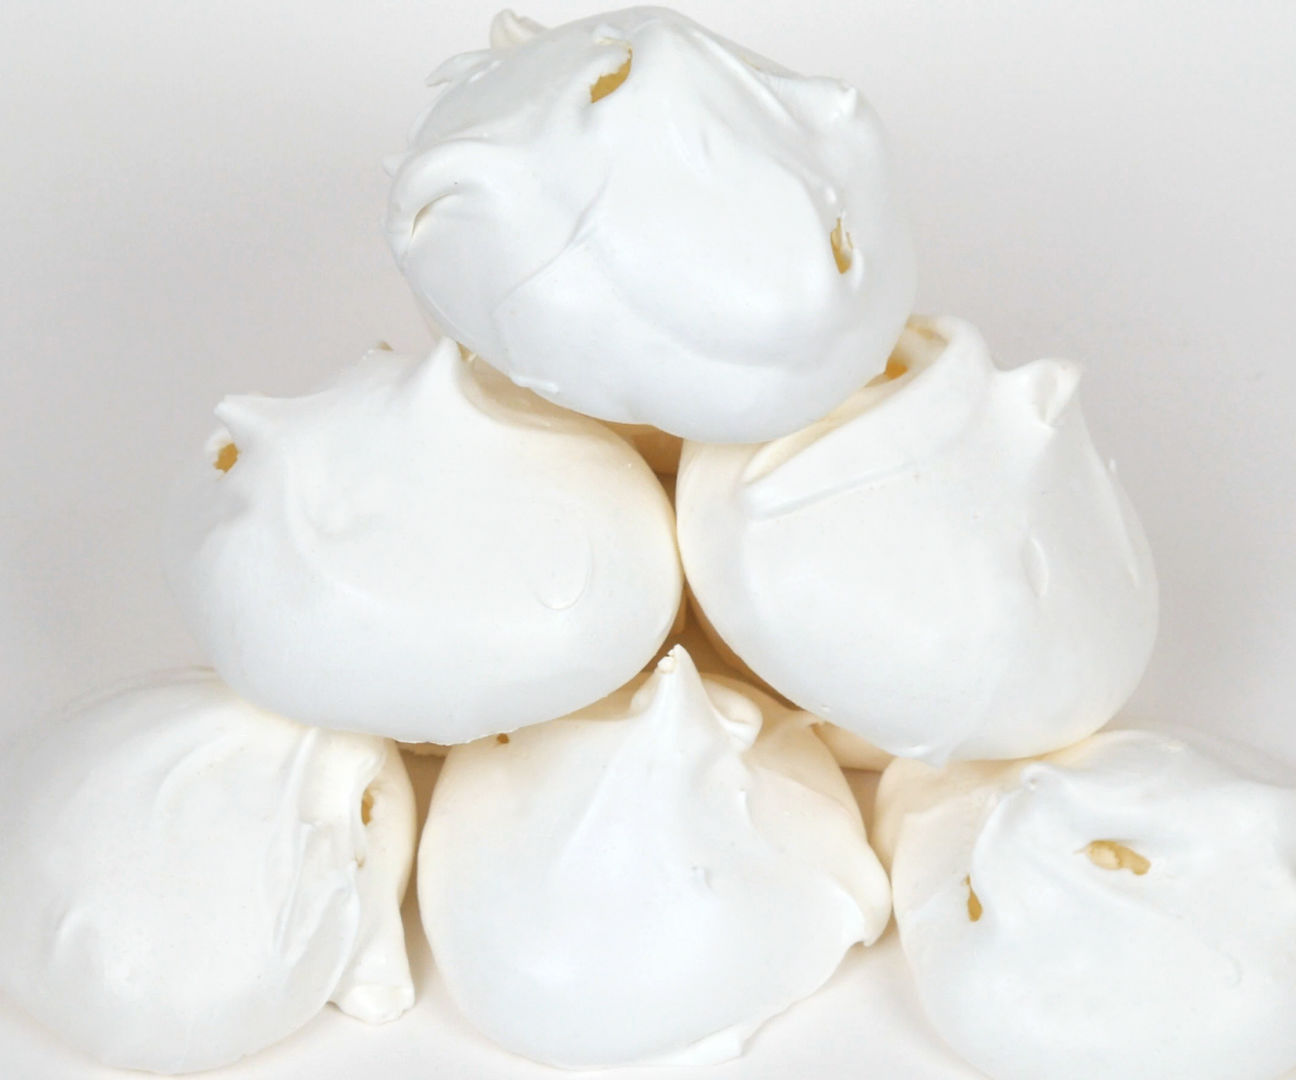 CRISP & CHEWY MERINGUE(S) WITH A SOFT MARSHMALLOW CENTRE